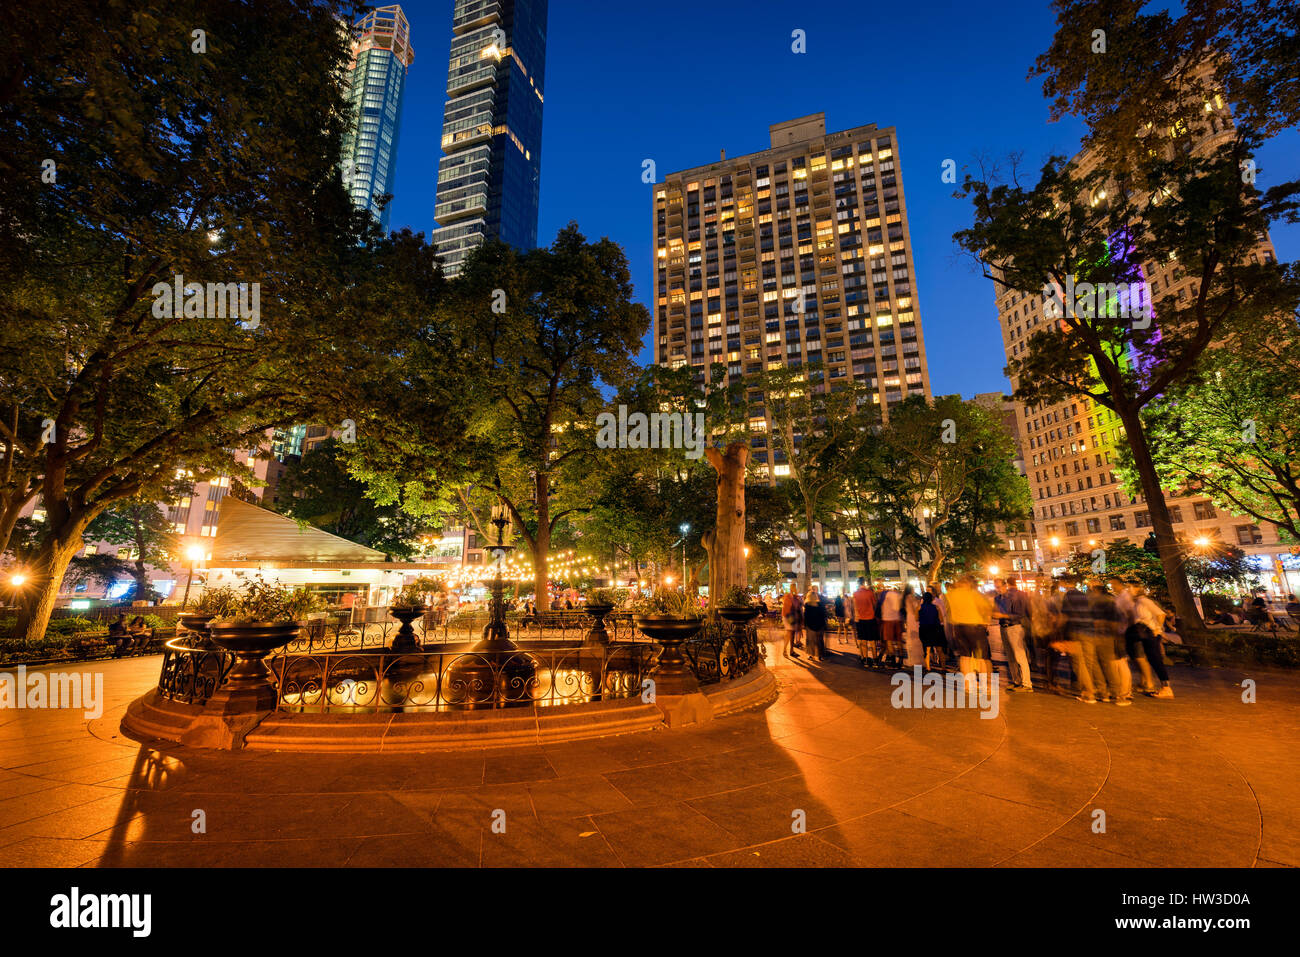 Madison Square Park and fountain at twilight in Summer. Flatiron District, Midtown, Manhattan, New York City - Stock Image